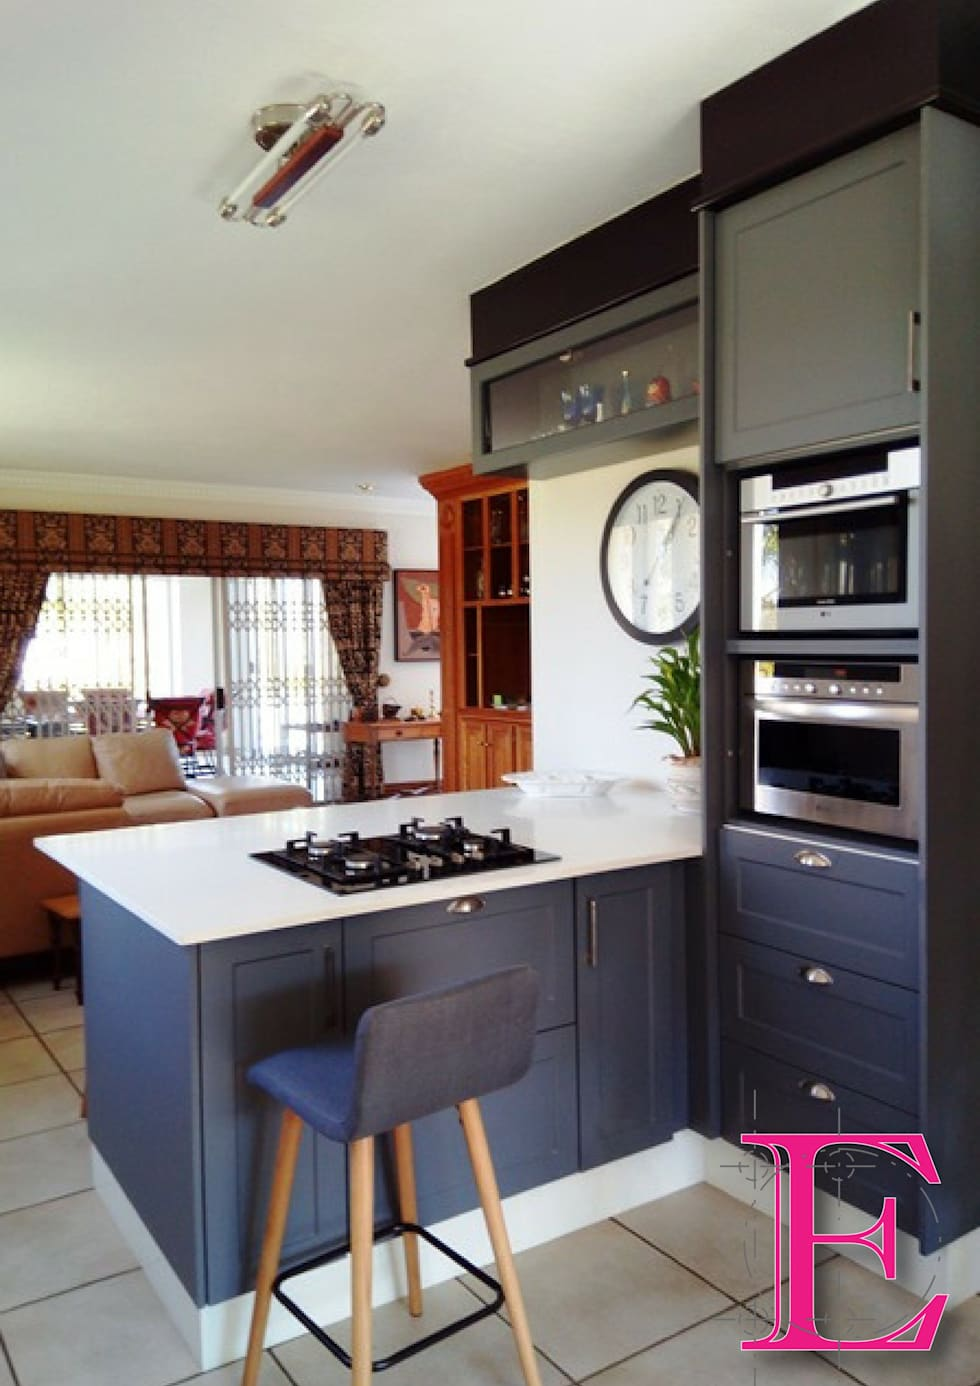 Built-in kitchens by Ergo Designer Kitchens and Cabinetry